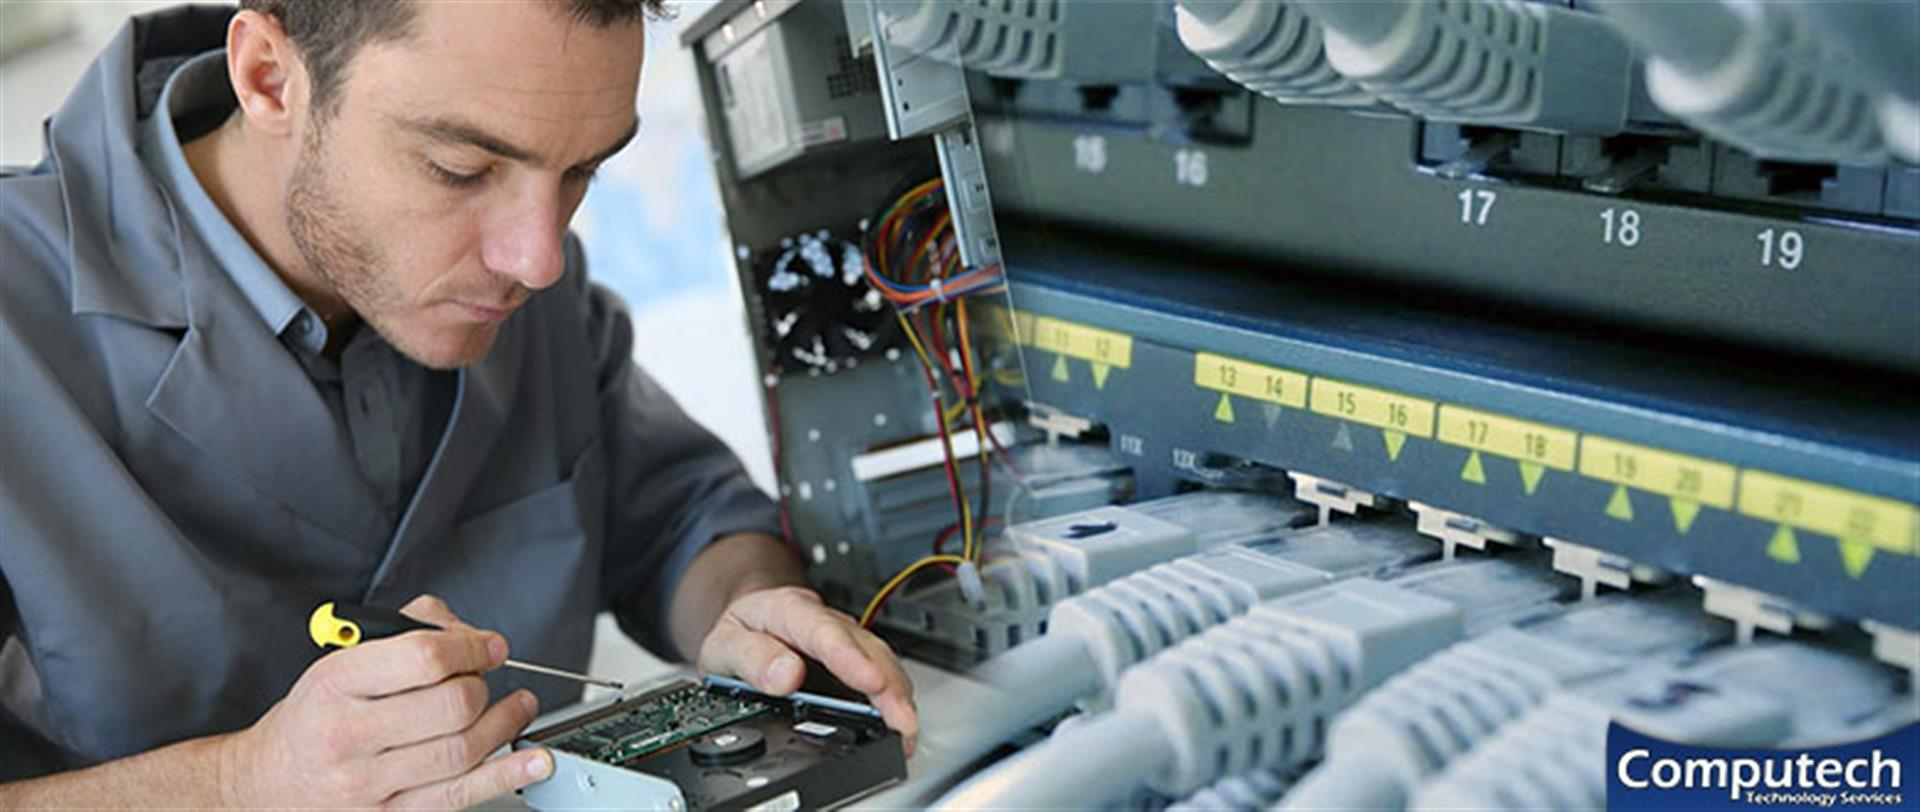 New Market Virginia On Site Computer PC & Printer Repair, Networks, Voice & Data Cabling Services